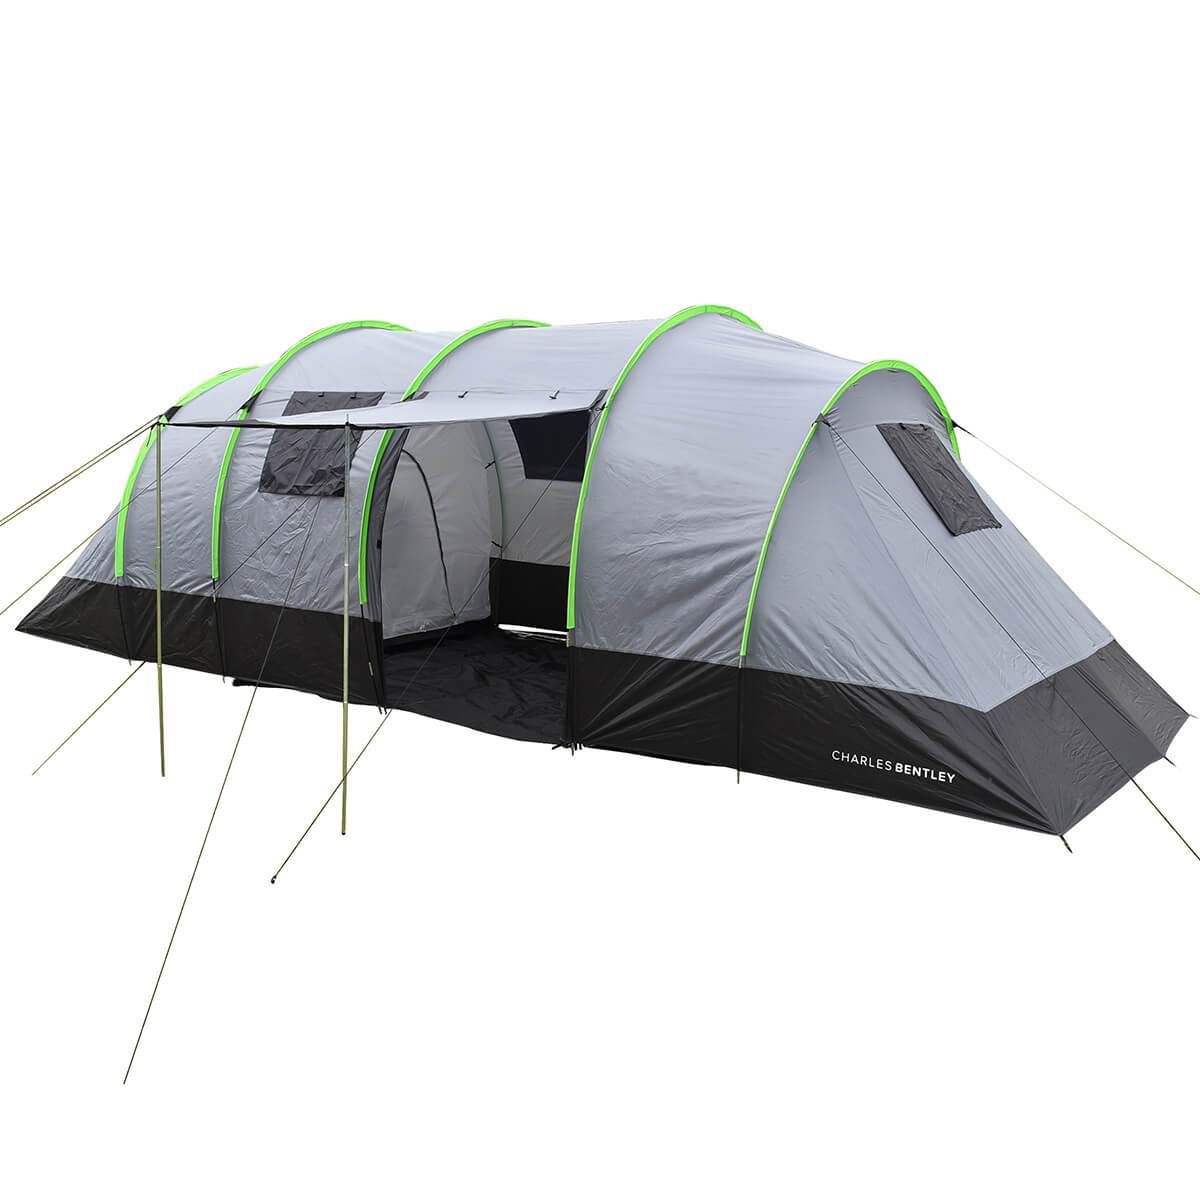 Charles Bentley 8 Man Family Tunnel Tent & Awning